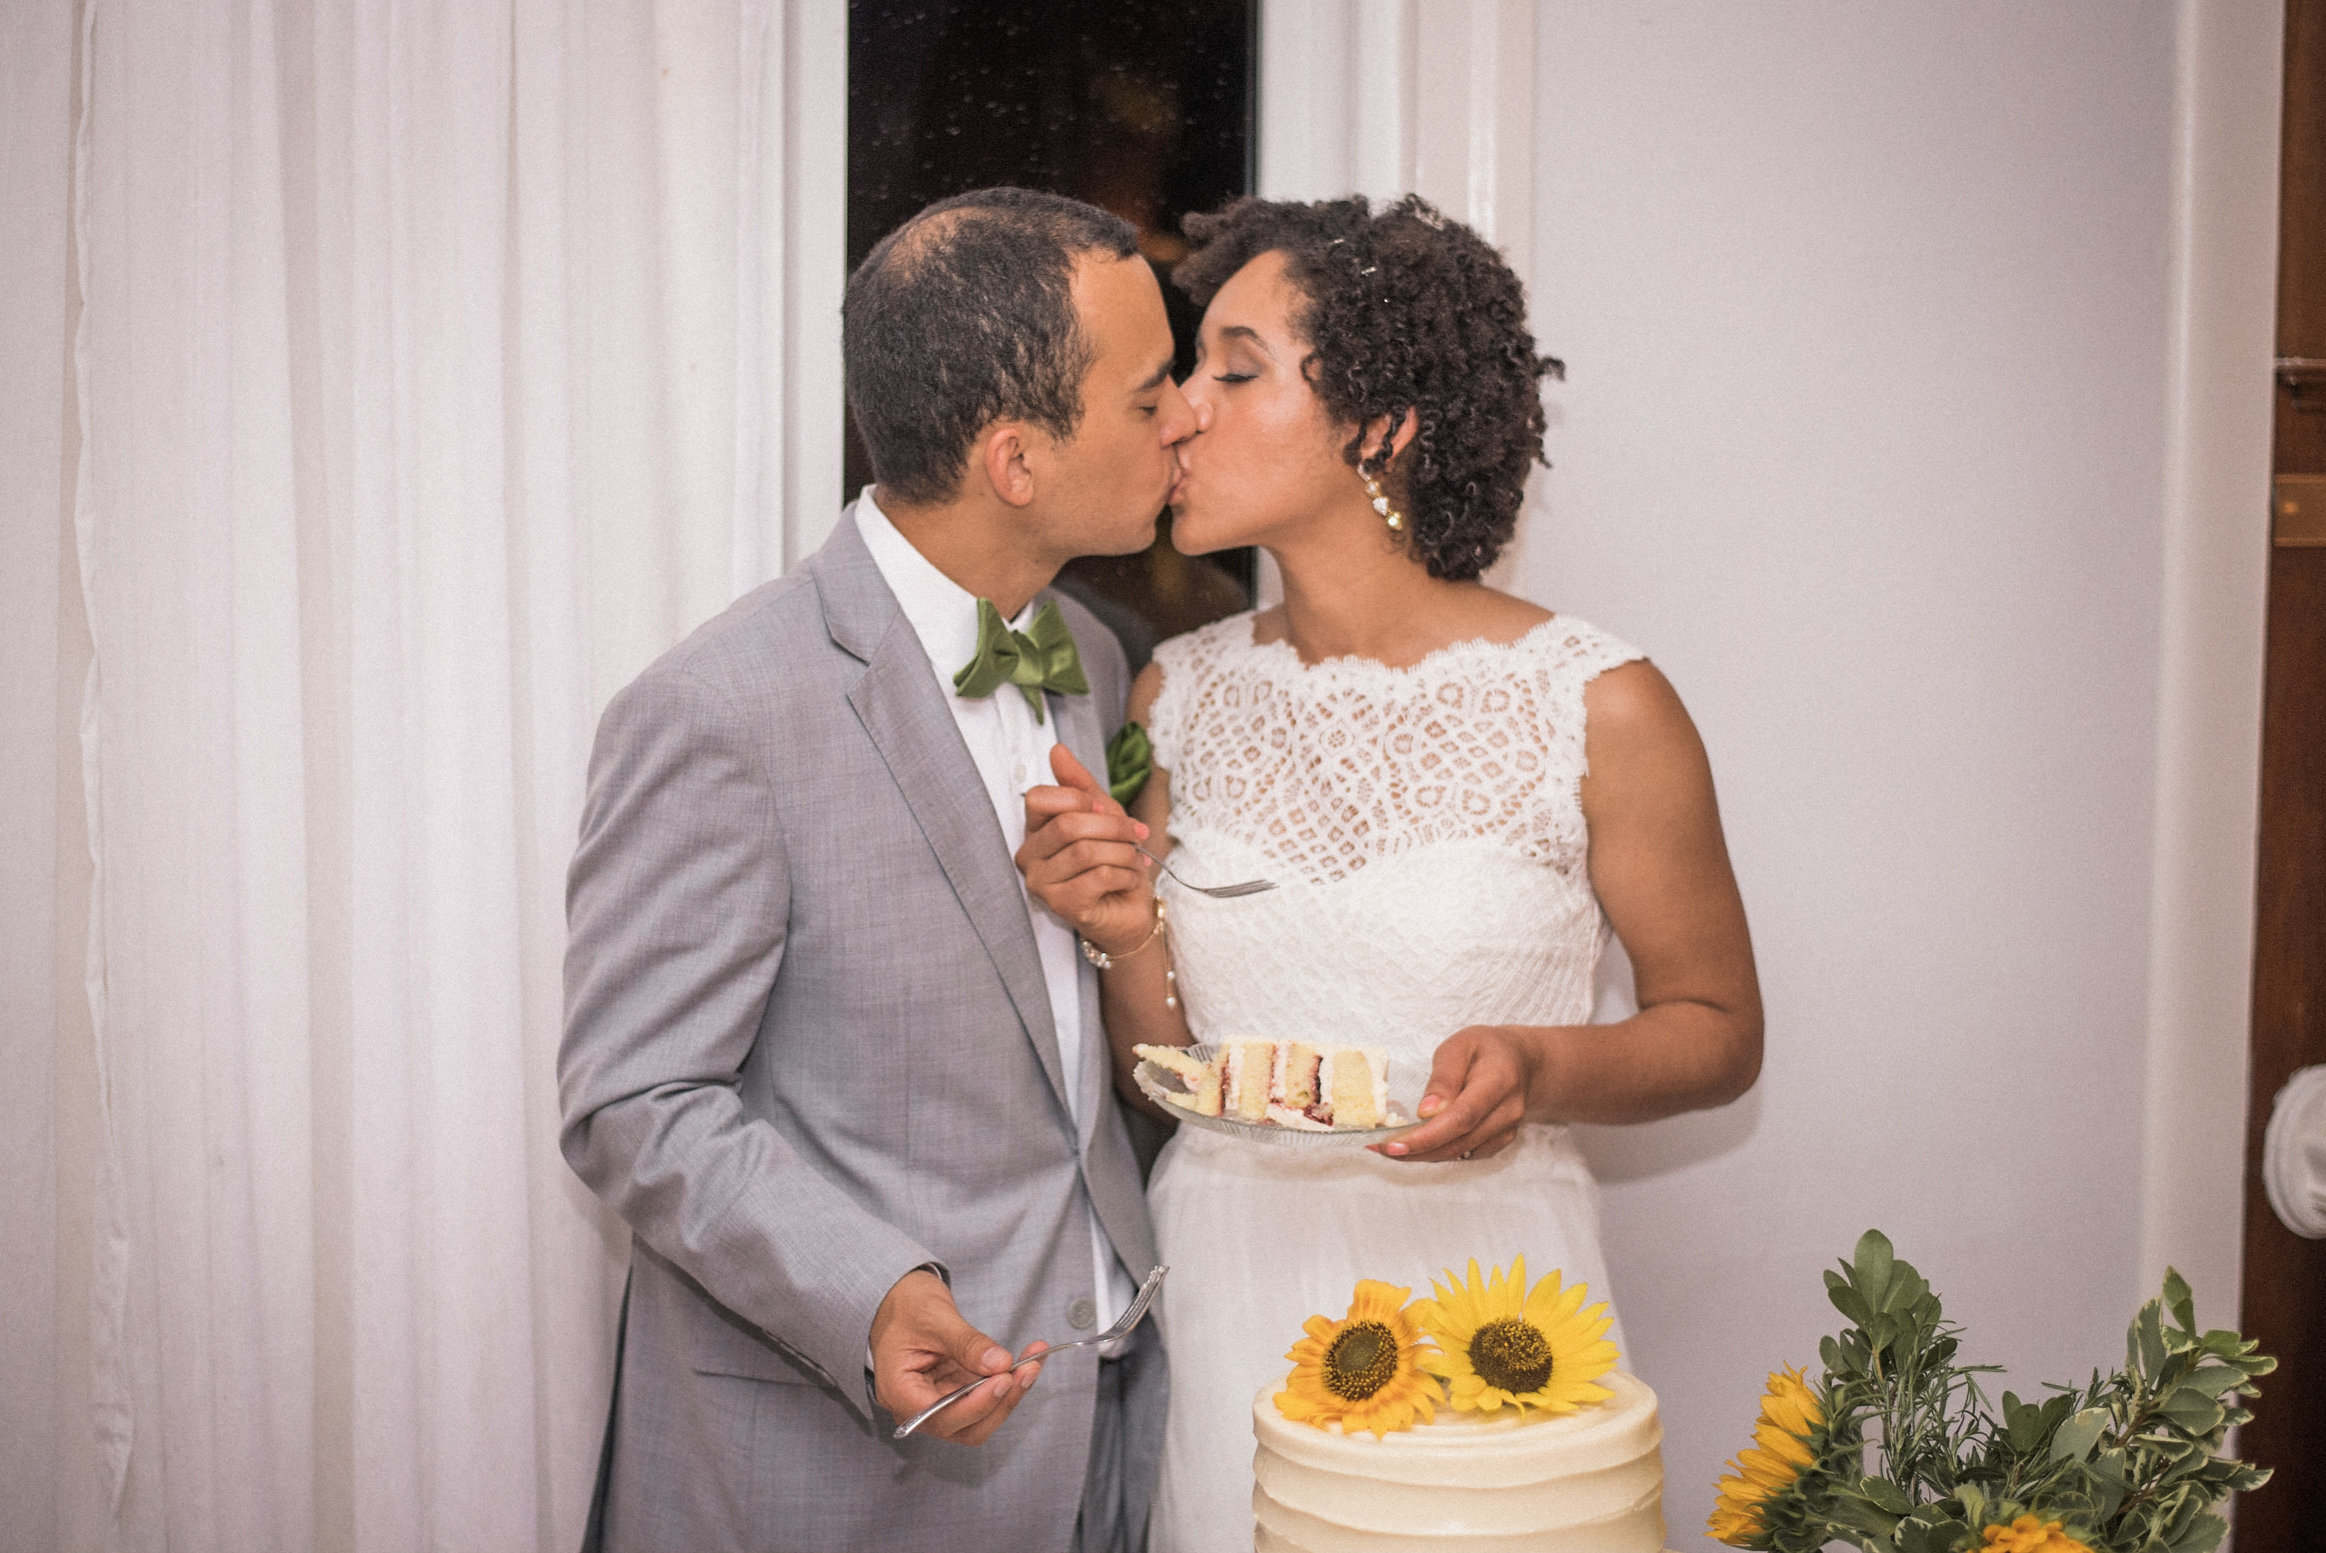 Bride and groom kissing with wedding cake